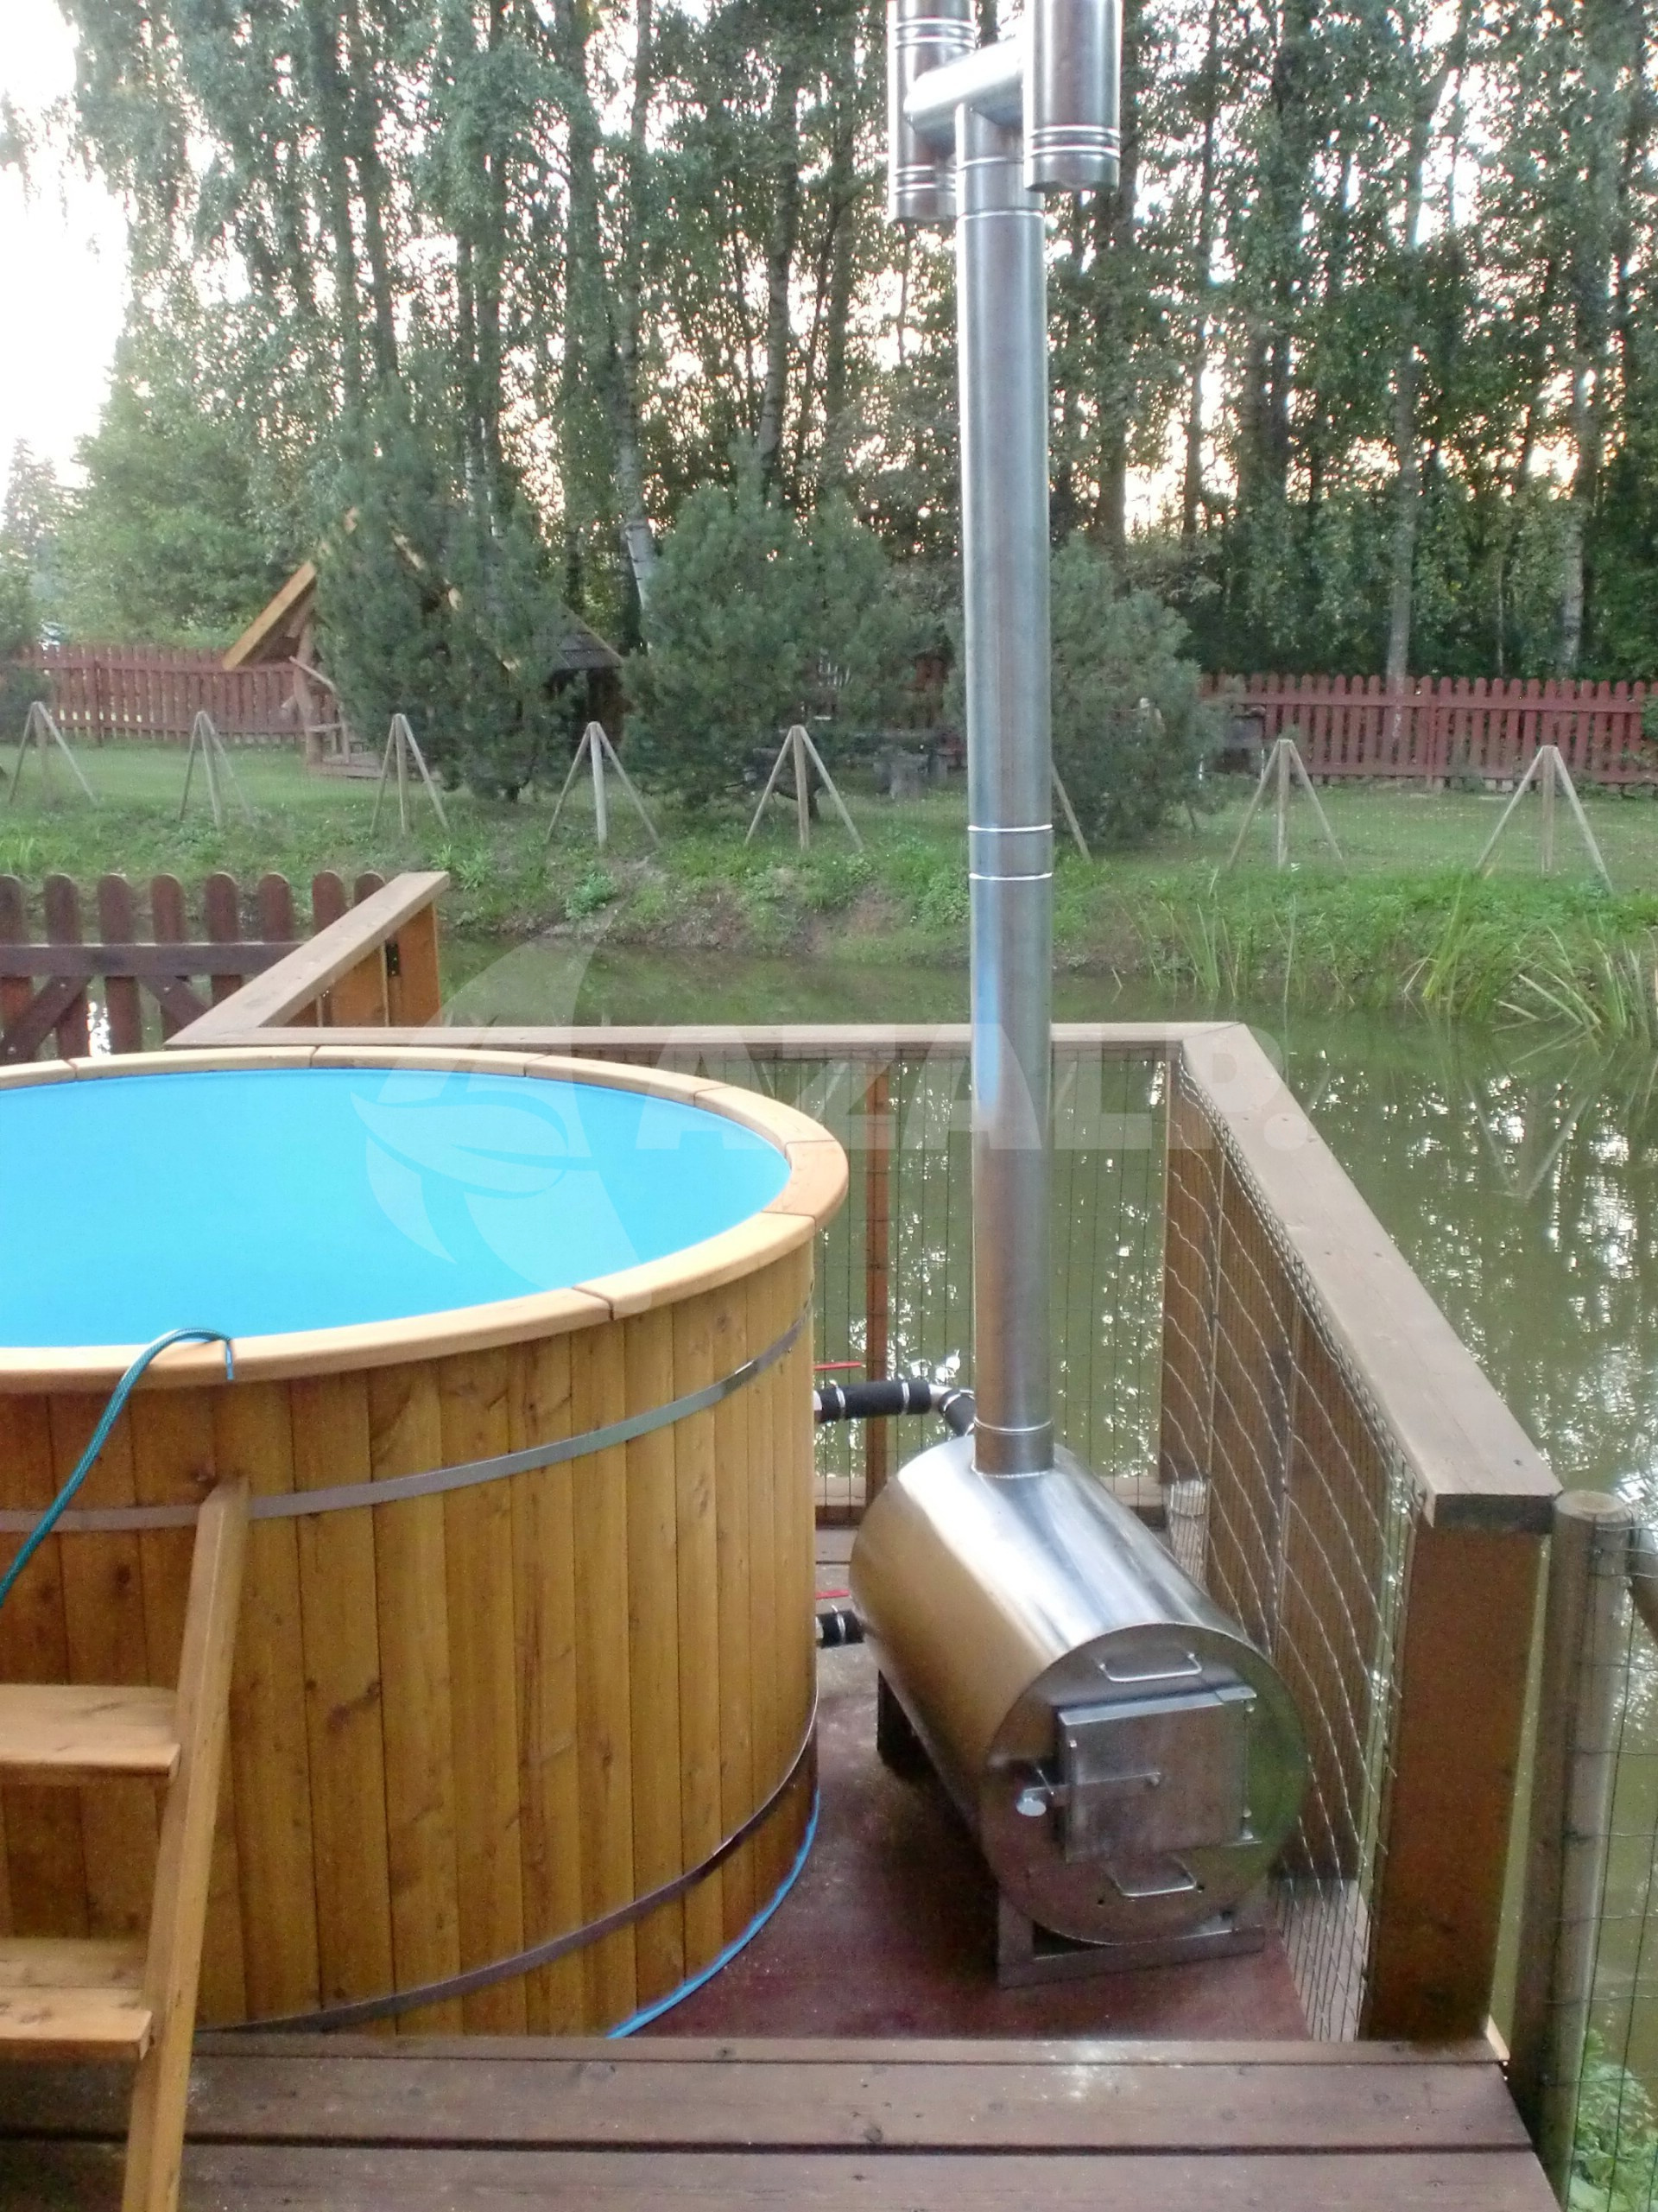 Hottub In De Tuin Interflex Hottub Vuren Met Polypropyleen Diameter 190cm